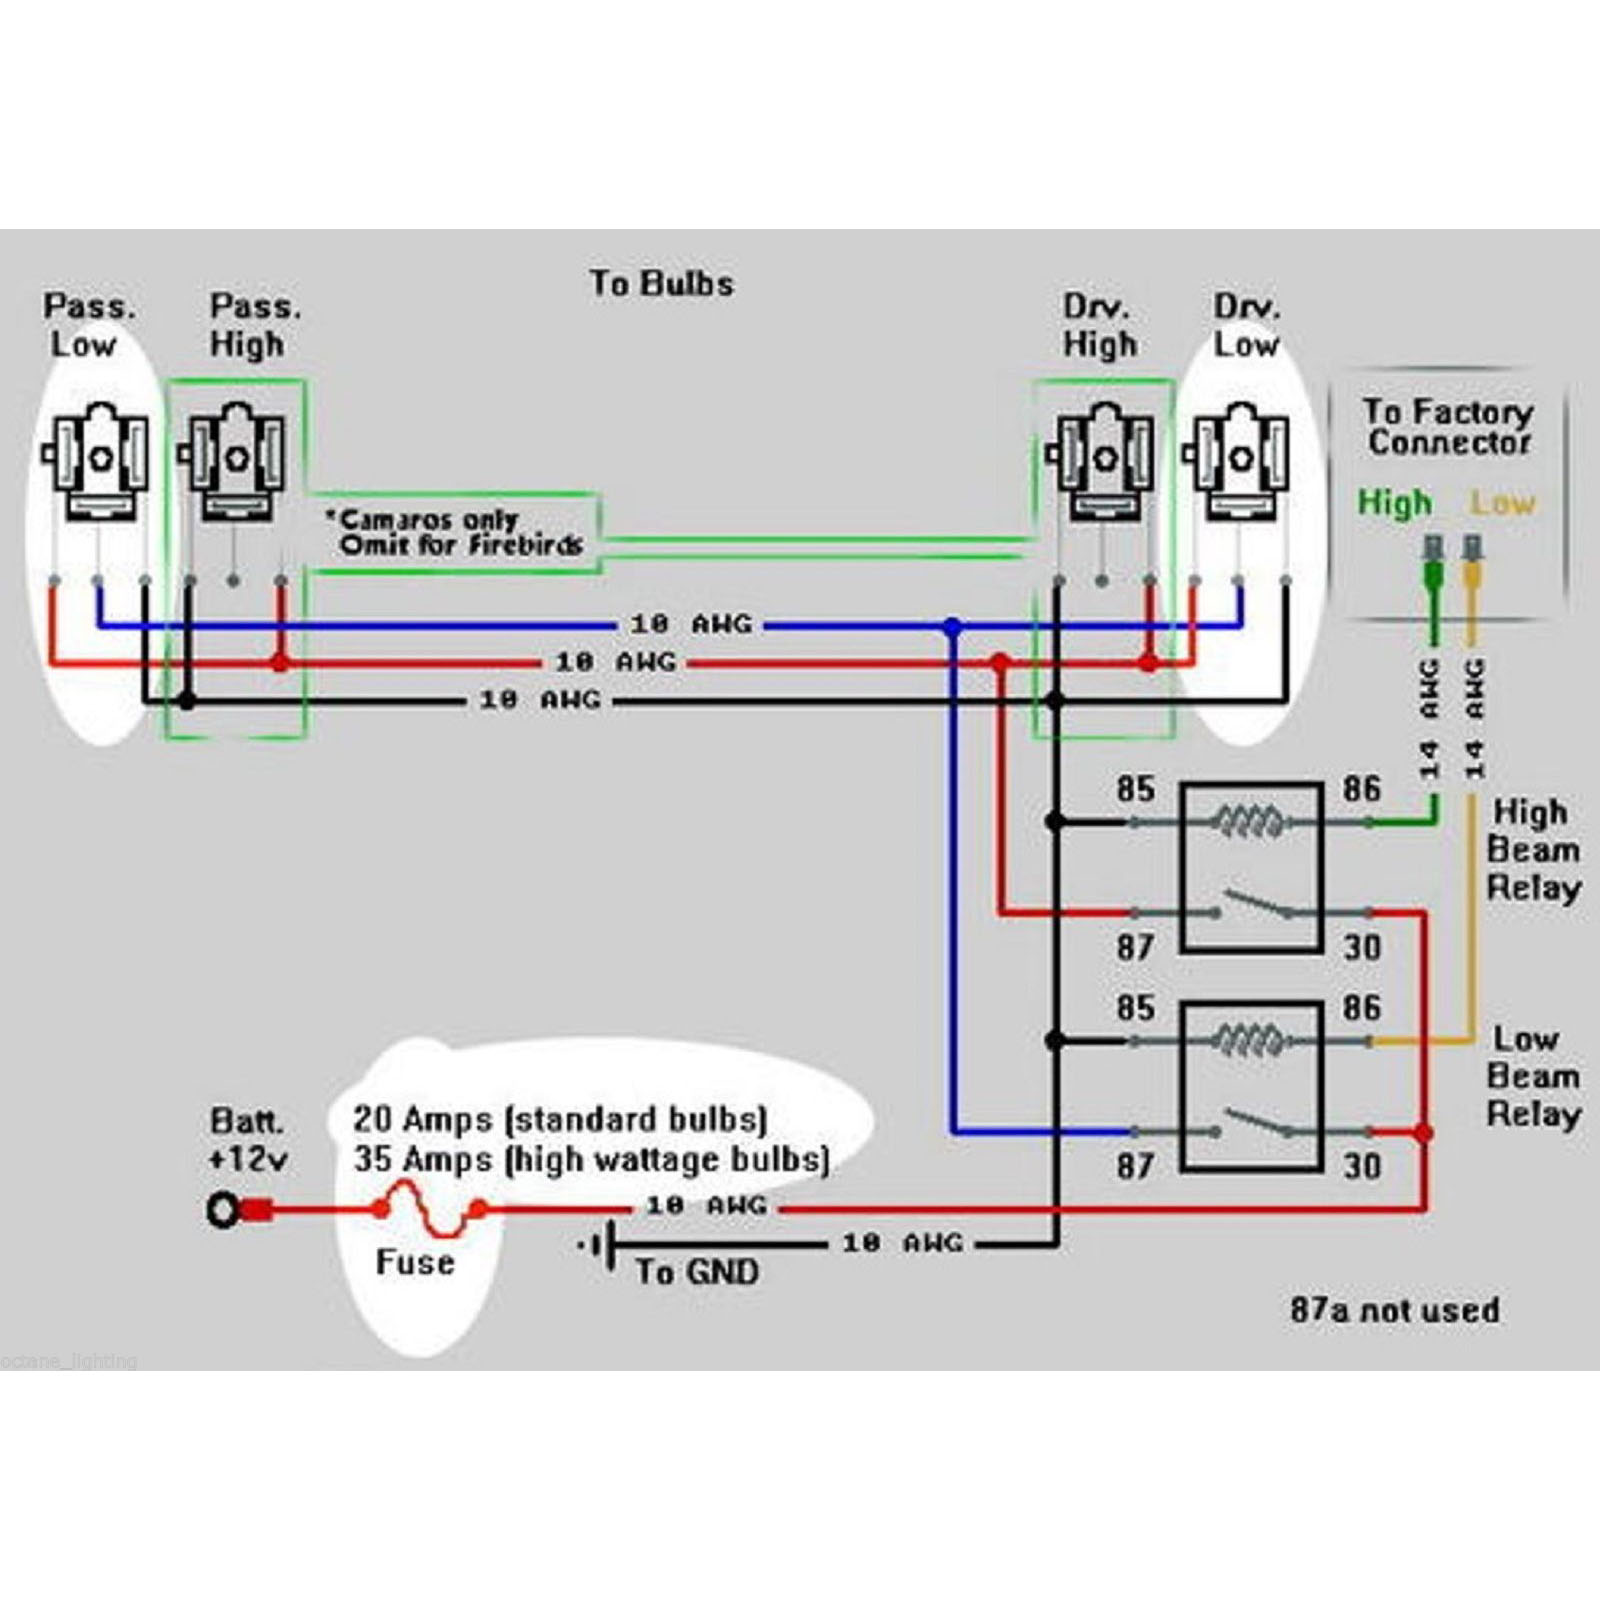 H4 Wiring Diagram Relay - Wiring Diagram K3 on